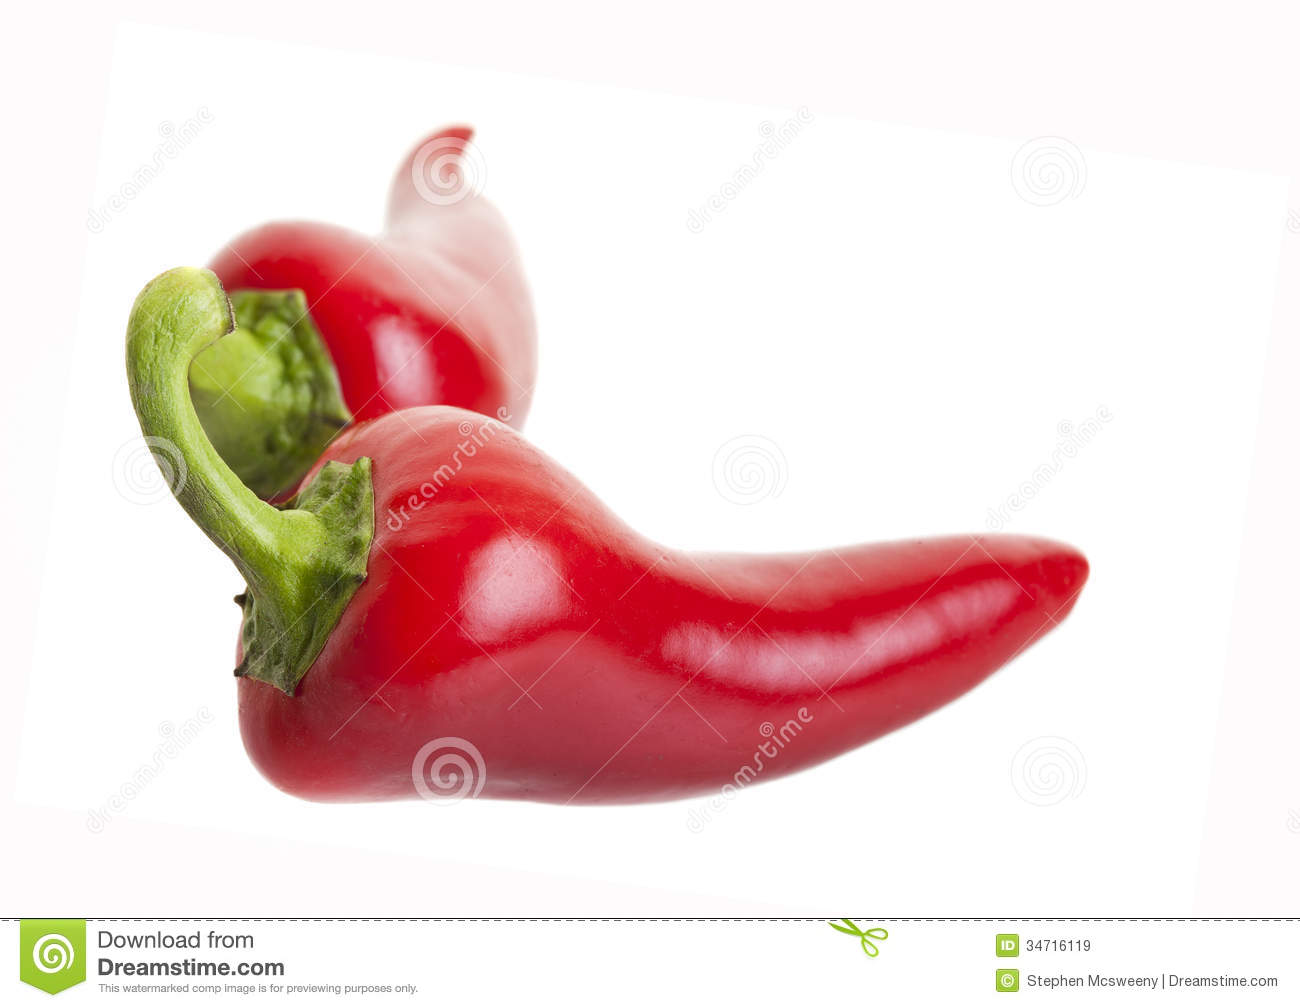 Hot Jalapeno Peppers Royalty Free Stock Images - Image: 34716119